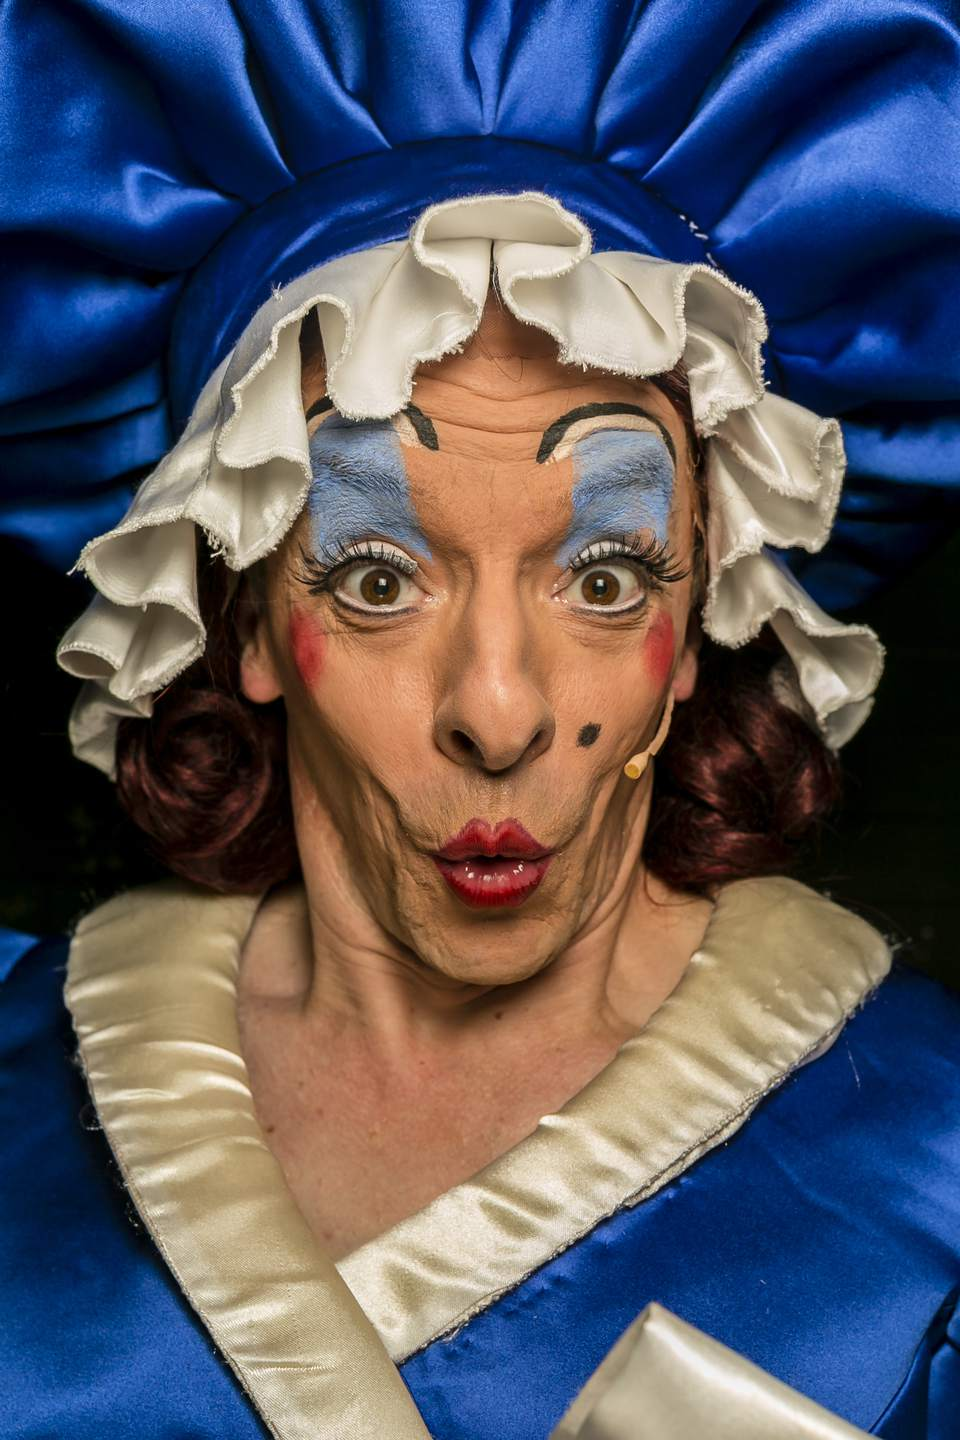 Behind The Scenes At Hackney Empire: Stephen Matthews playing 'Dame' poses for a portrait during the Puss in Boots pantomime at the Hackney Empire.